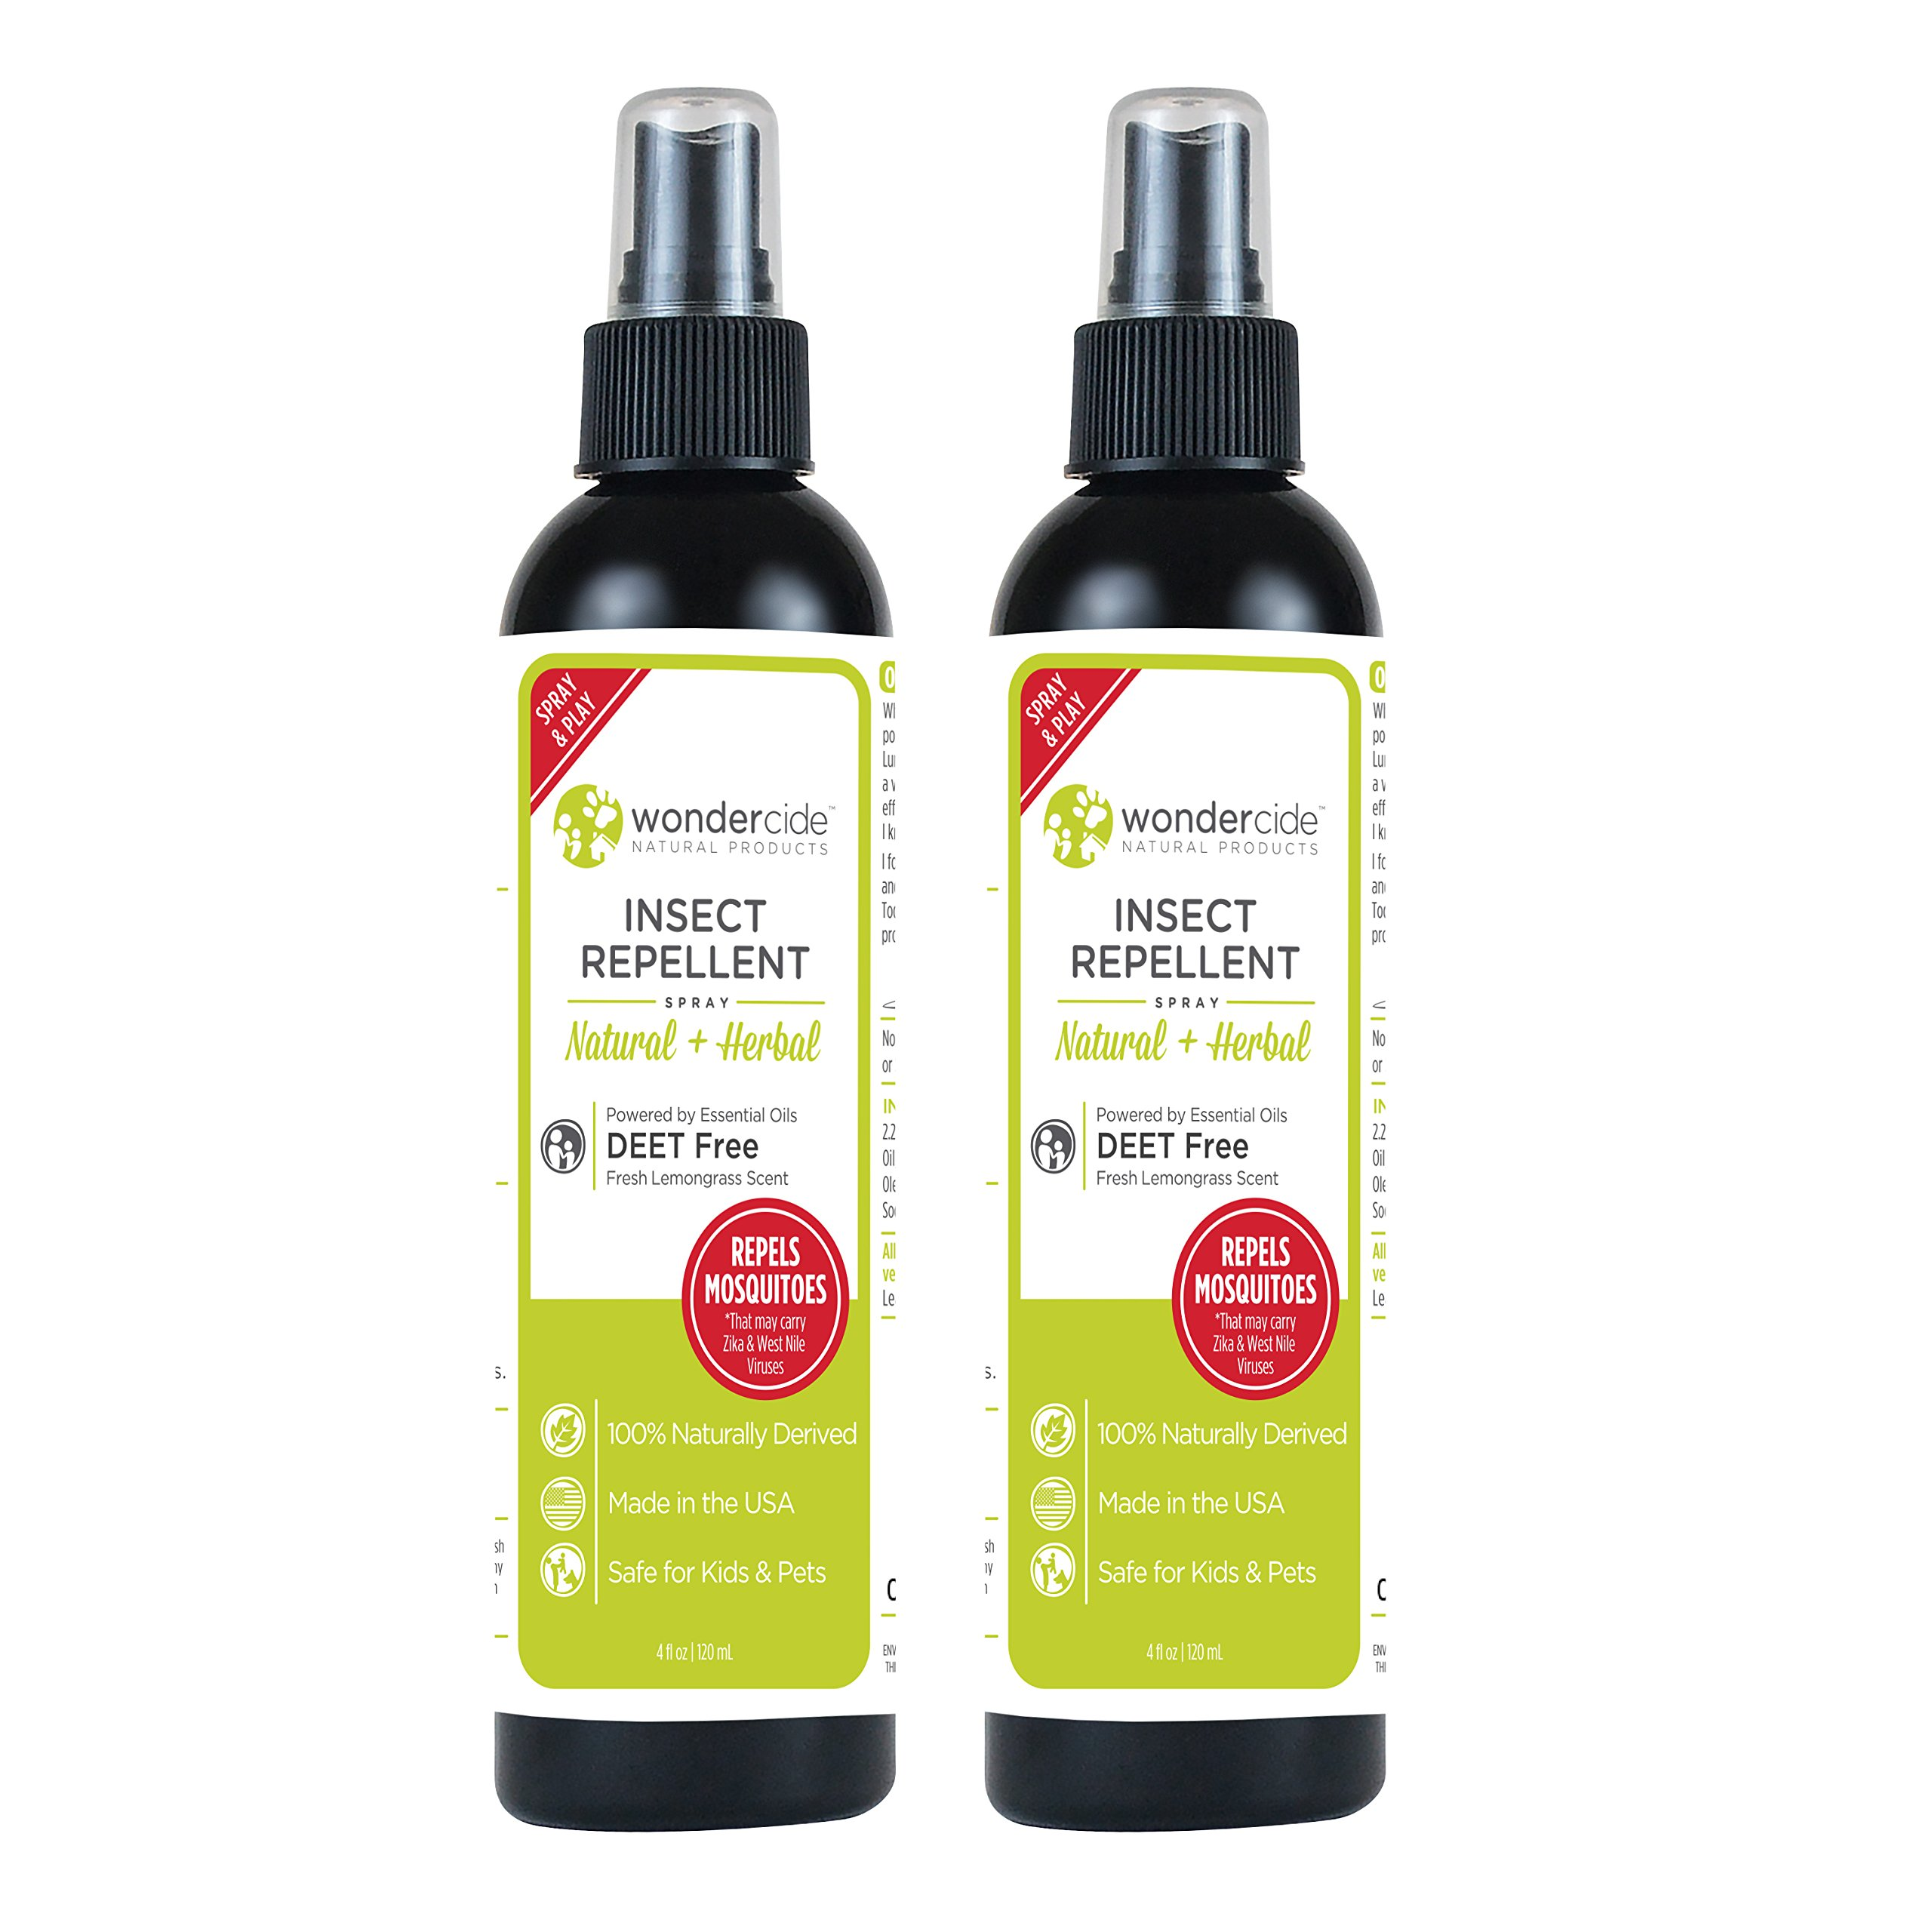 Wondercide Natural Deet Free Insect Repellent 4 oz Pack of 2 (Lemongrass)